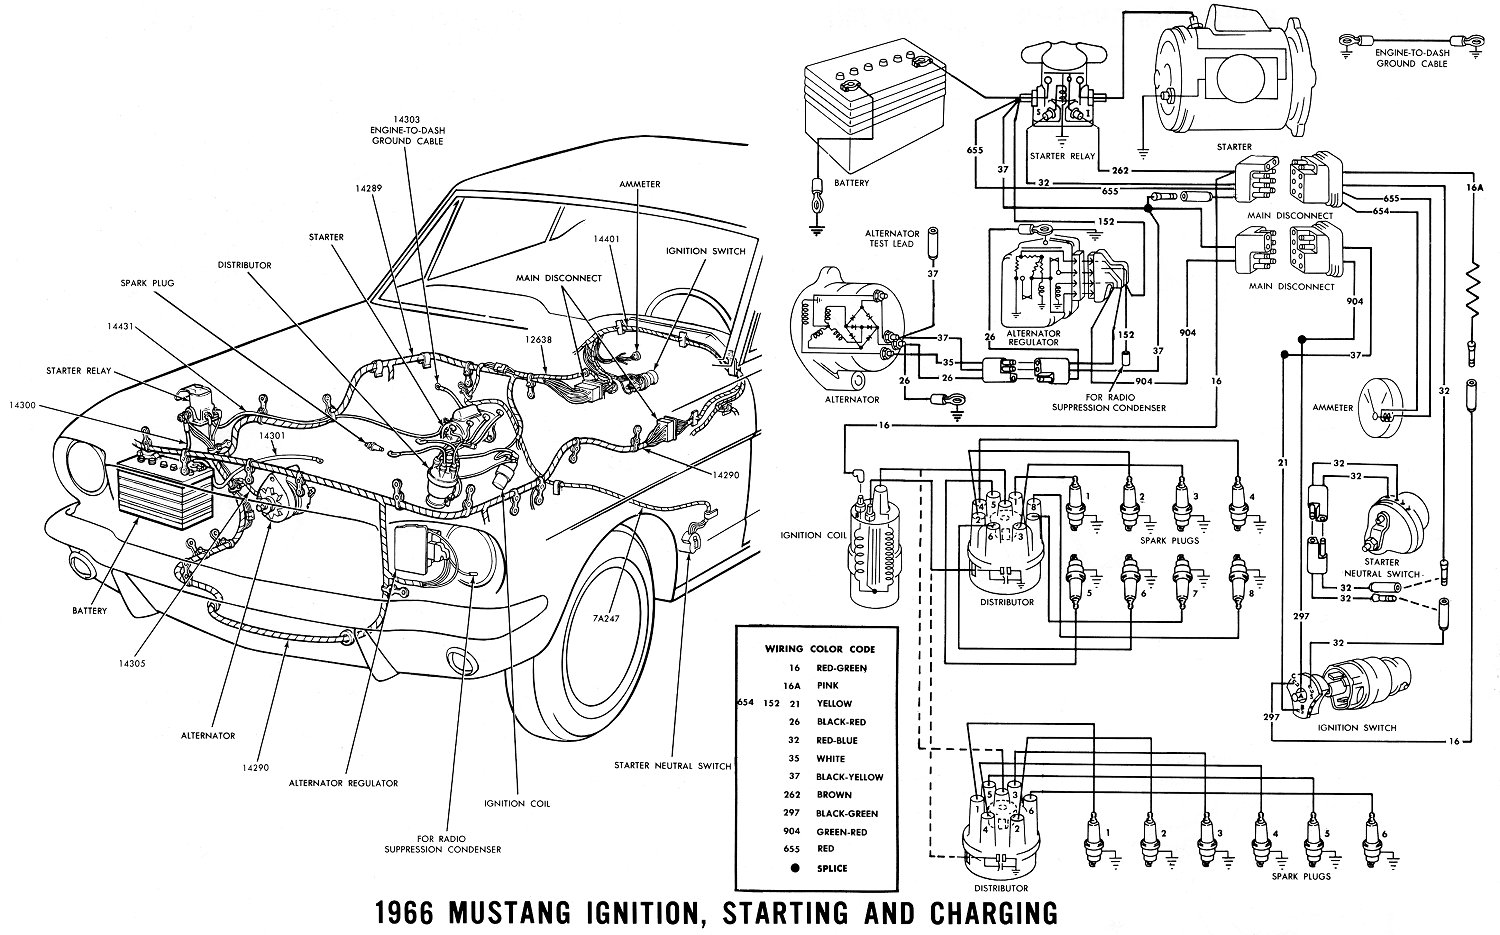 lelu s 66 mustang 1966 mustang wiring diagrams 97 Mustang Fuse Box Diagram  2005 Ford Mustang Fuse Box Location